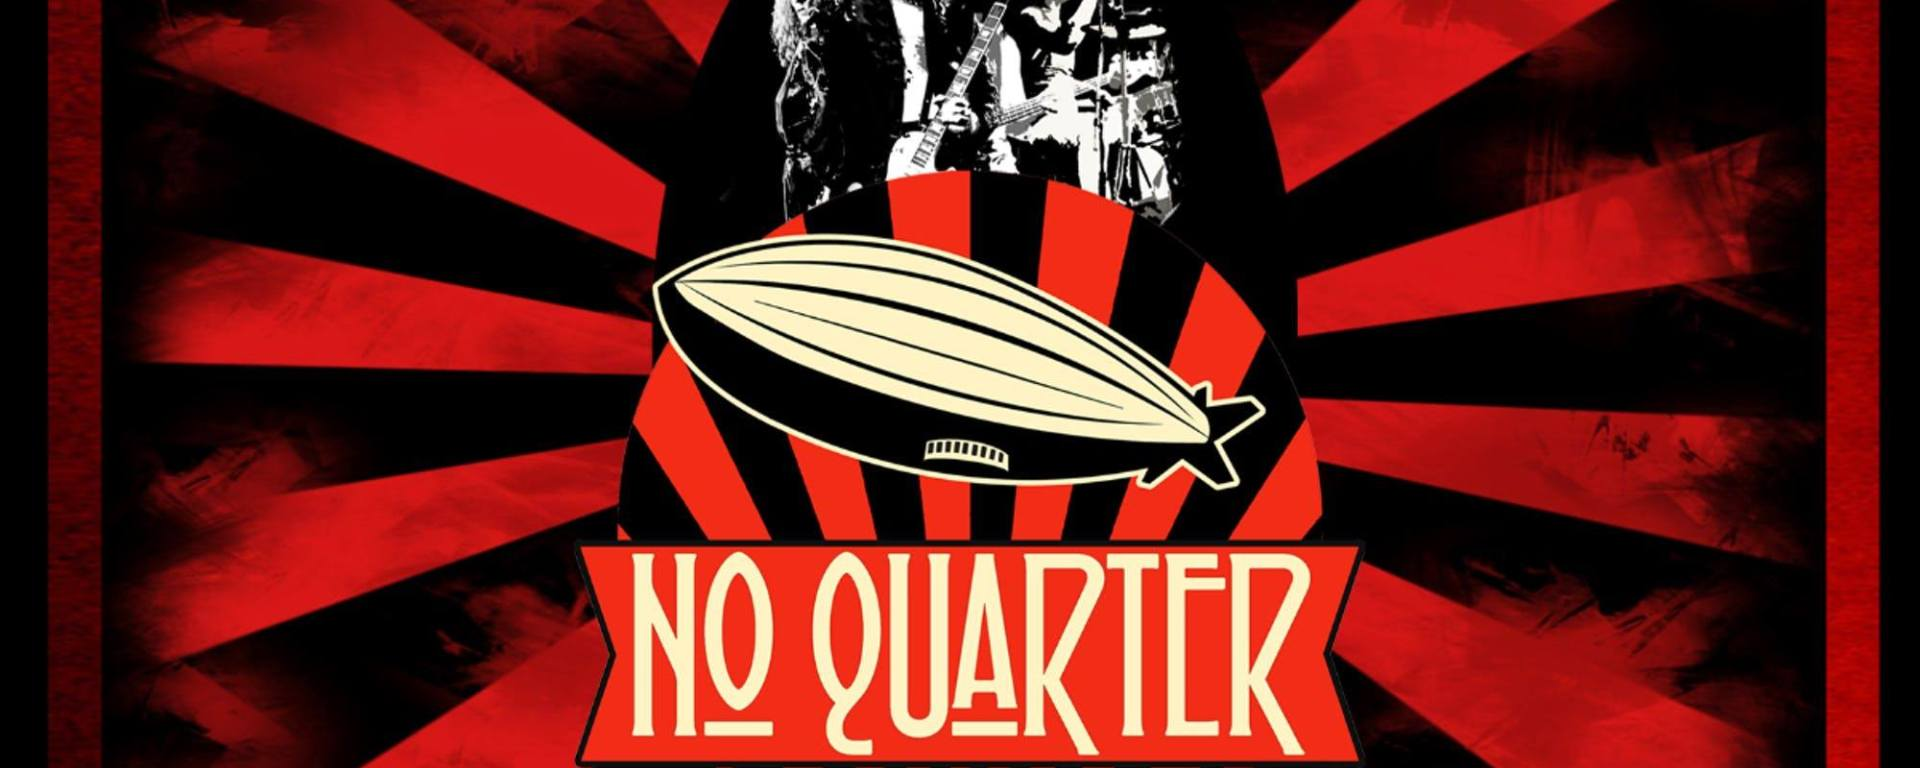 no quarter led zeppelin tribute band poster